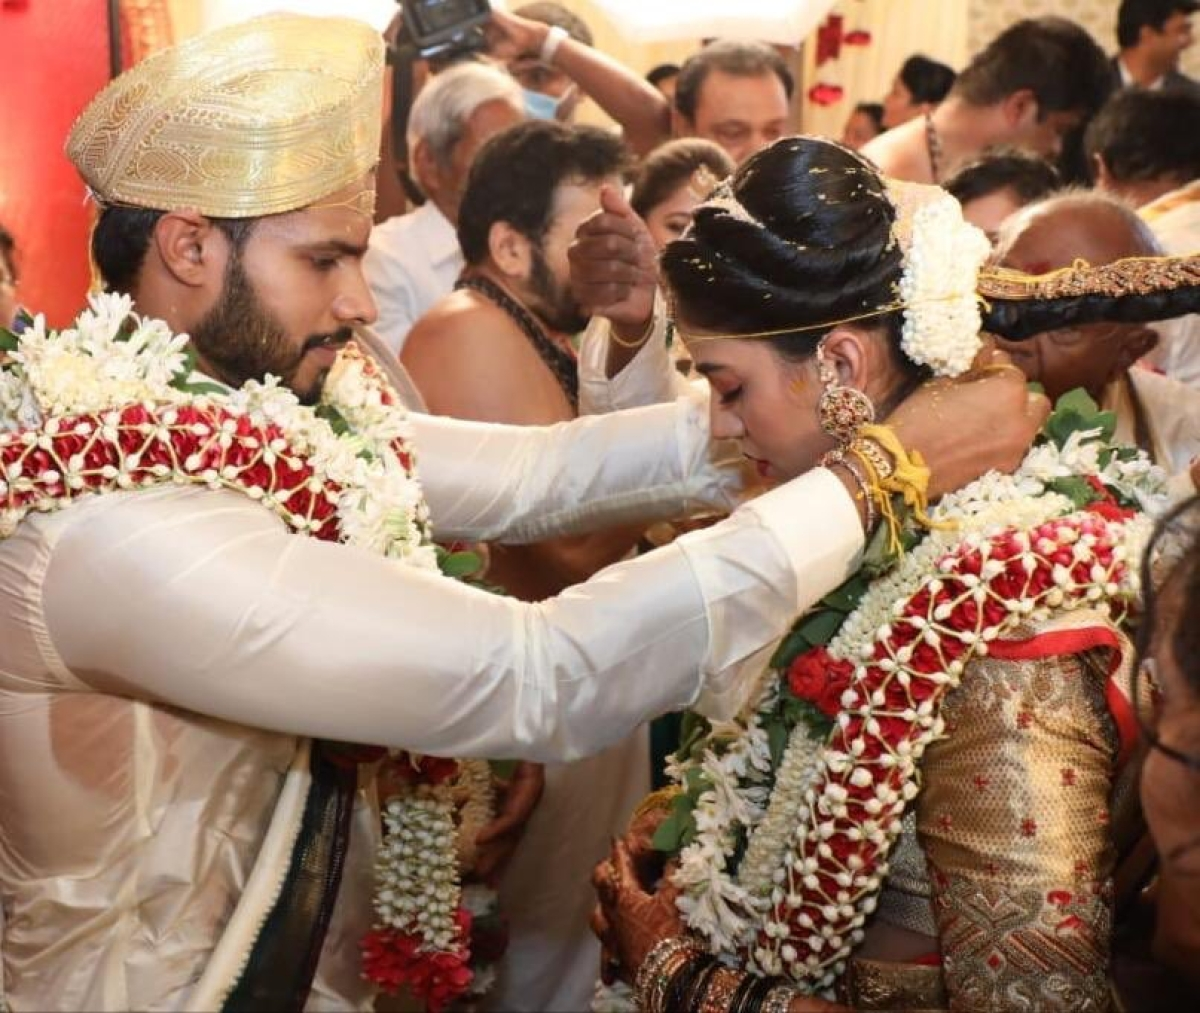 Some animals more equal? HD Kumaraswamy's son ties the knot amid coronavirus lockdown